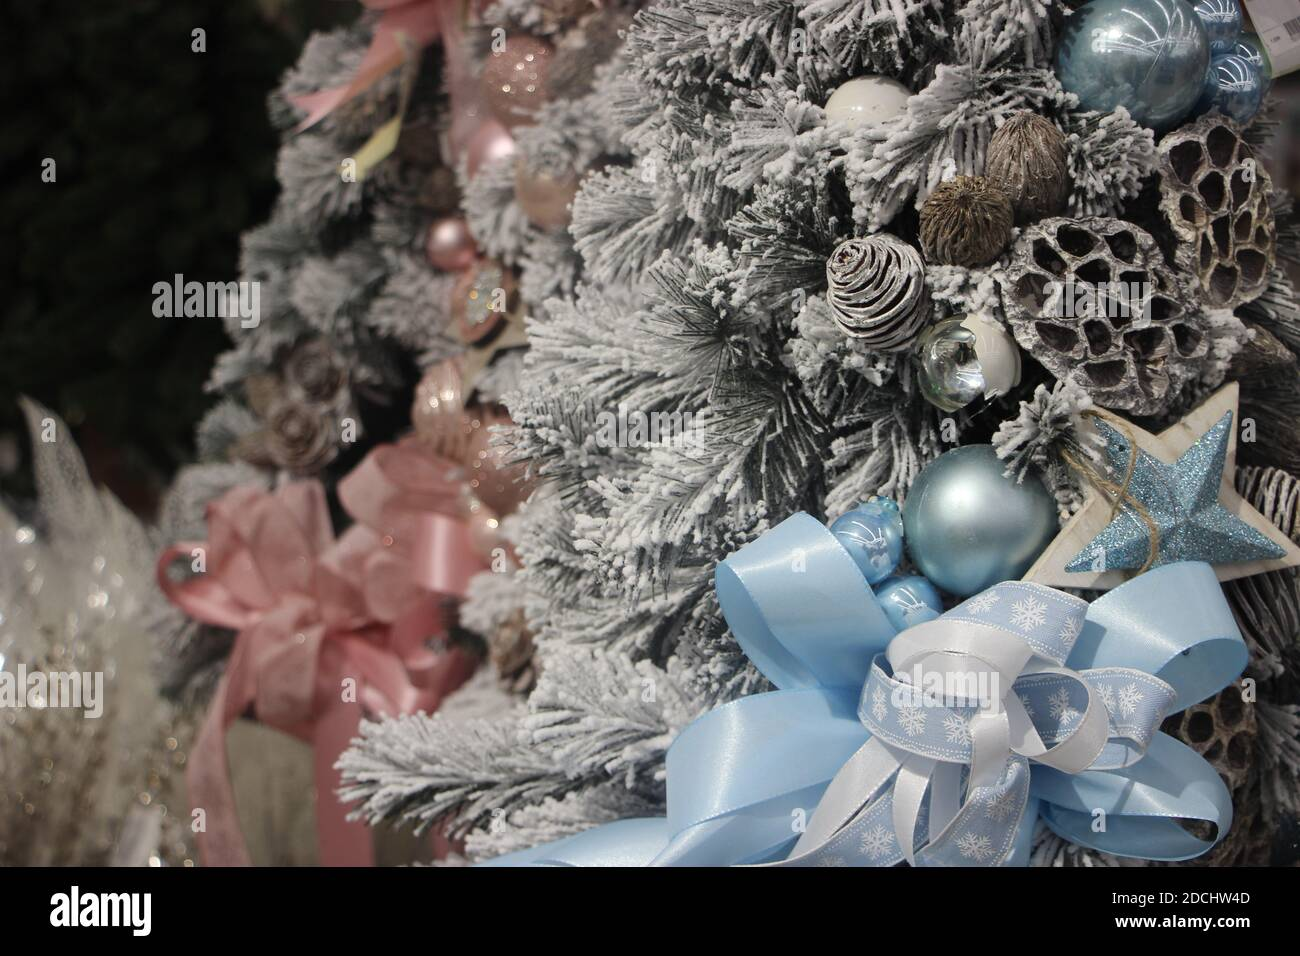 Decorated Christmas Tree In Baby Blue And Dusty Rose Colors New Year Scene Selective Focus Stock Photo Alamy